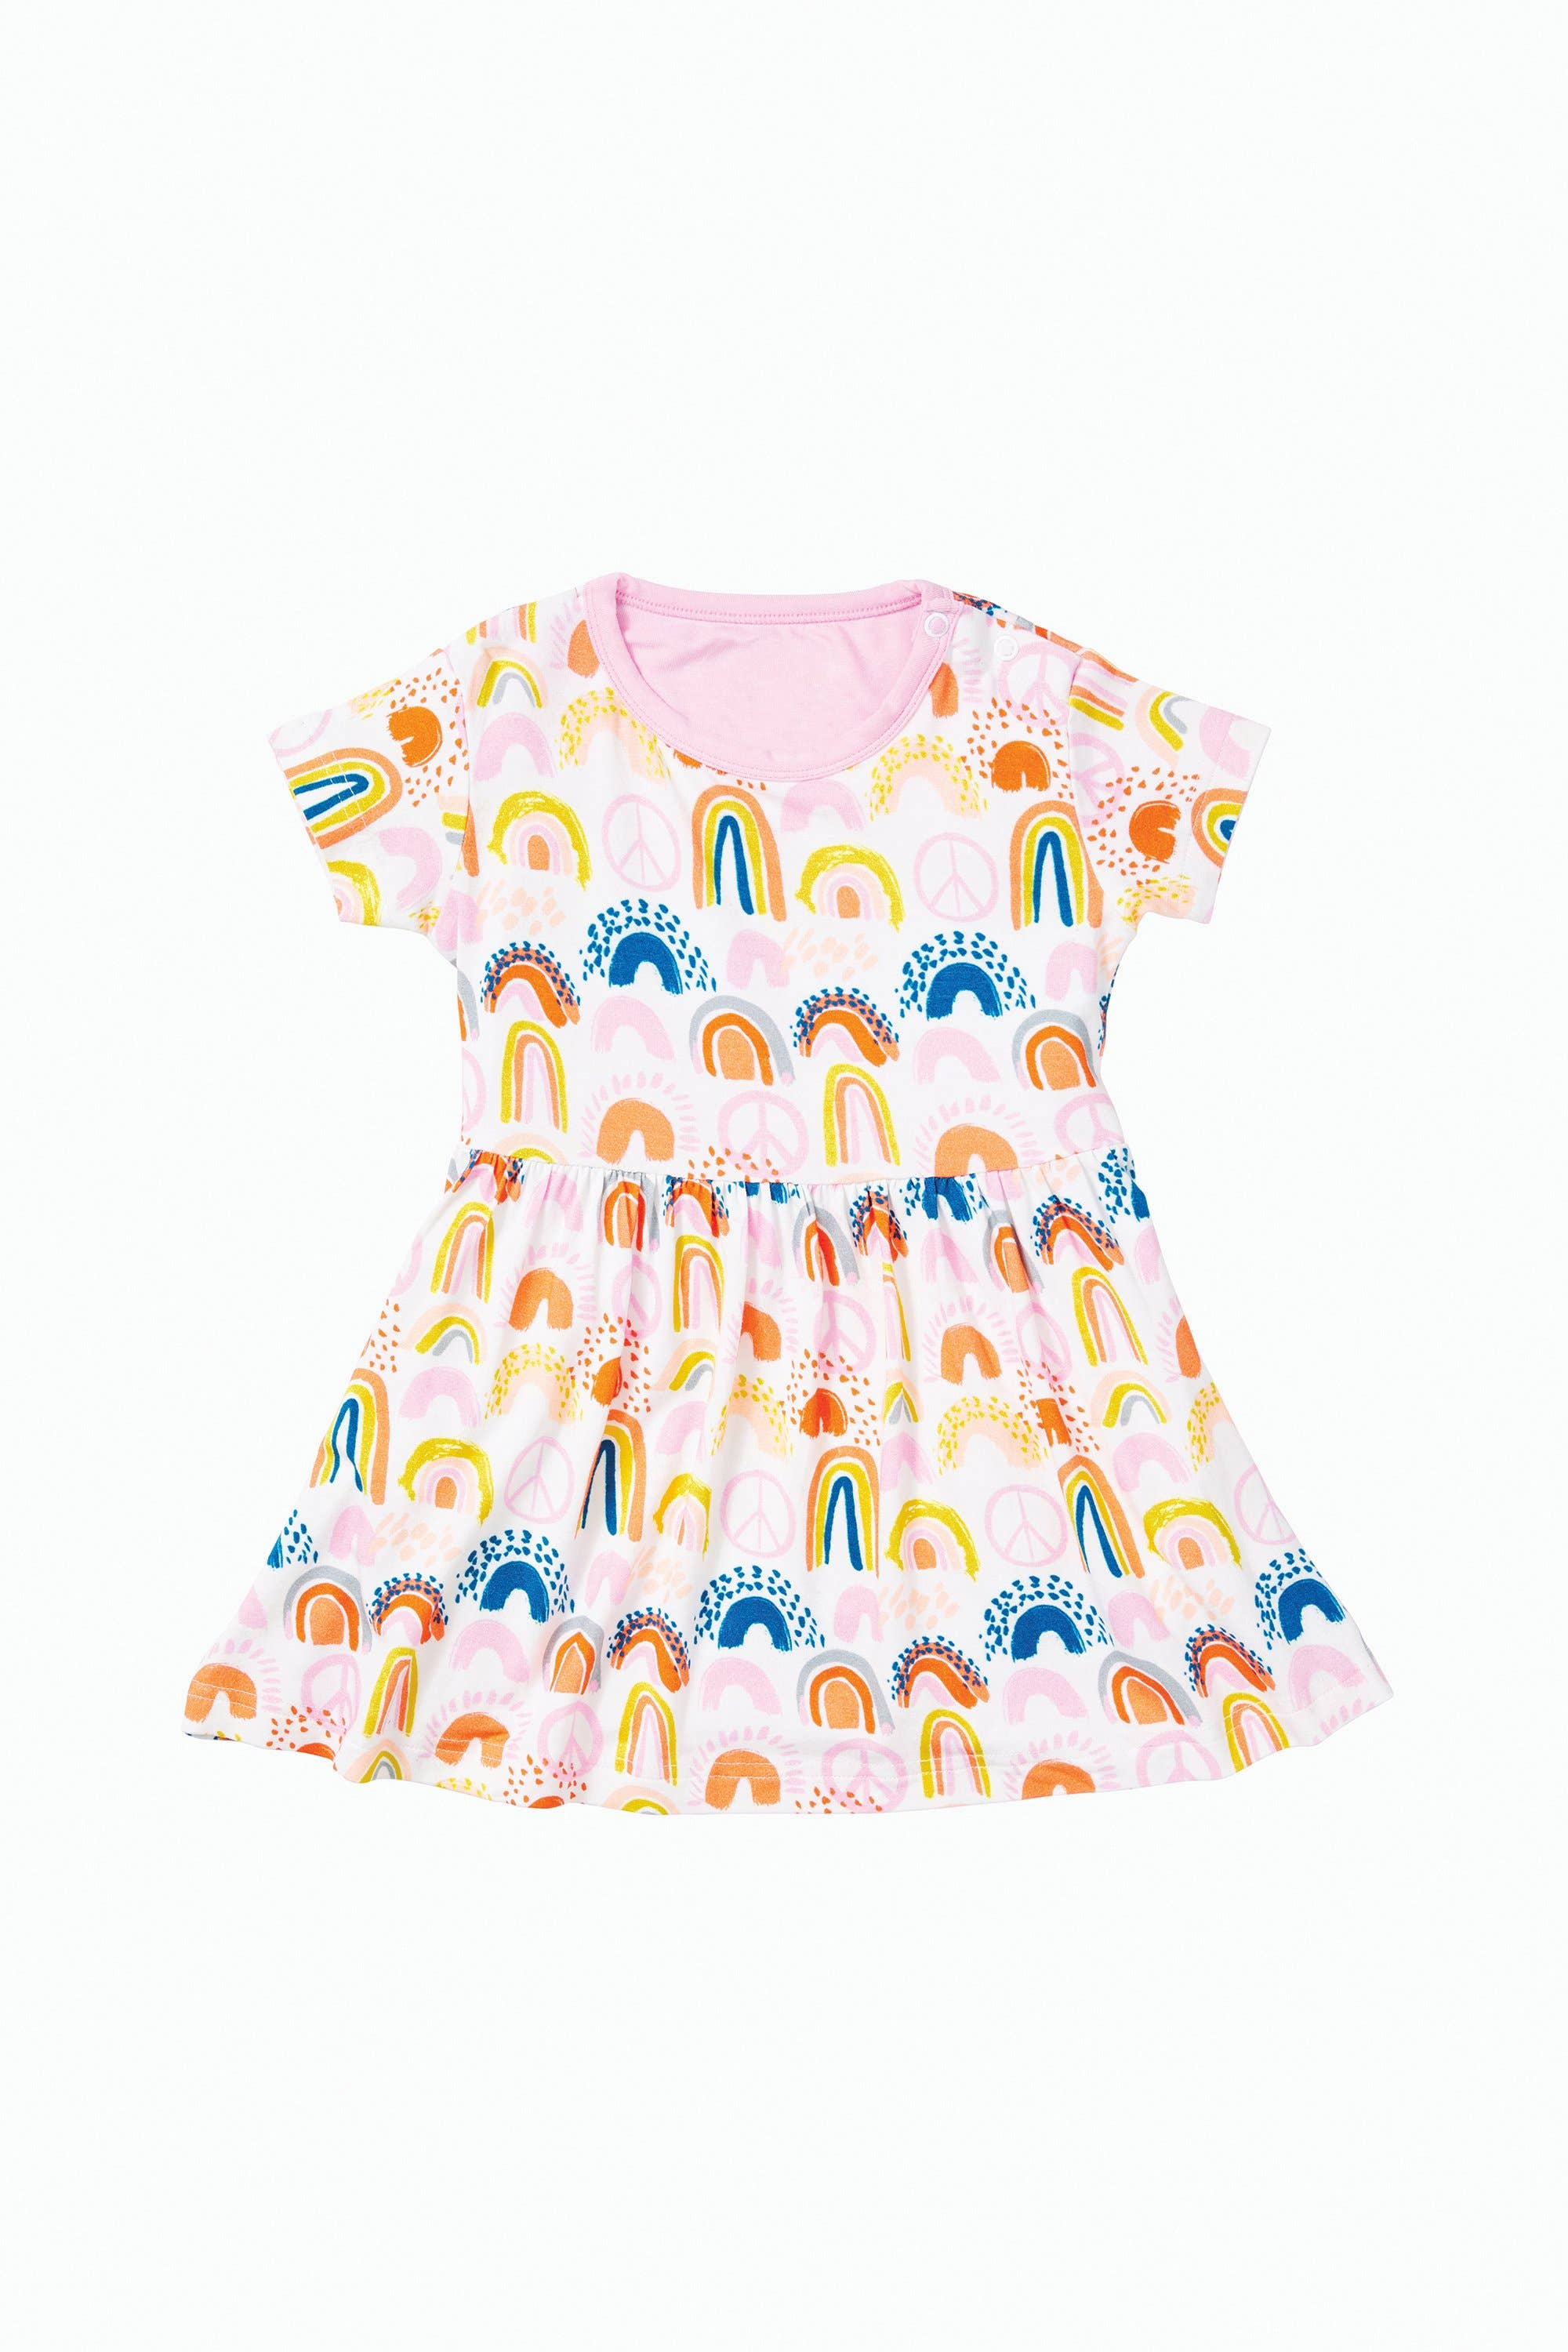 Clover Baby & Kids Rainbow Dress Pink